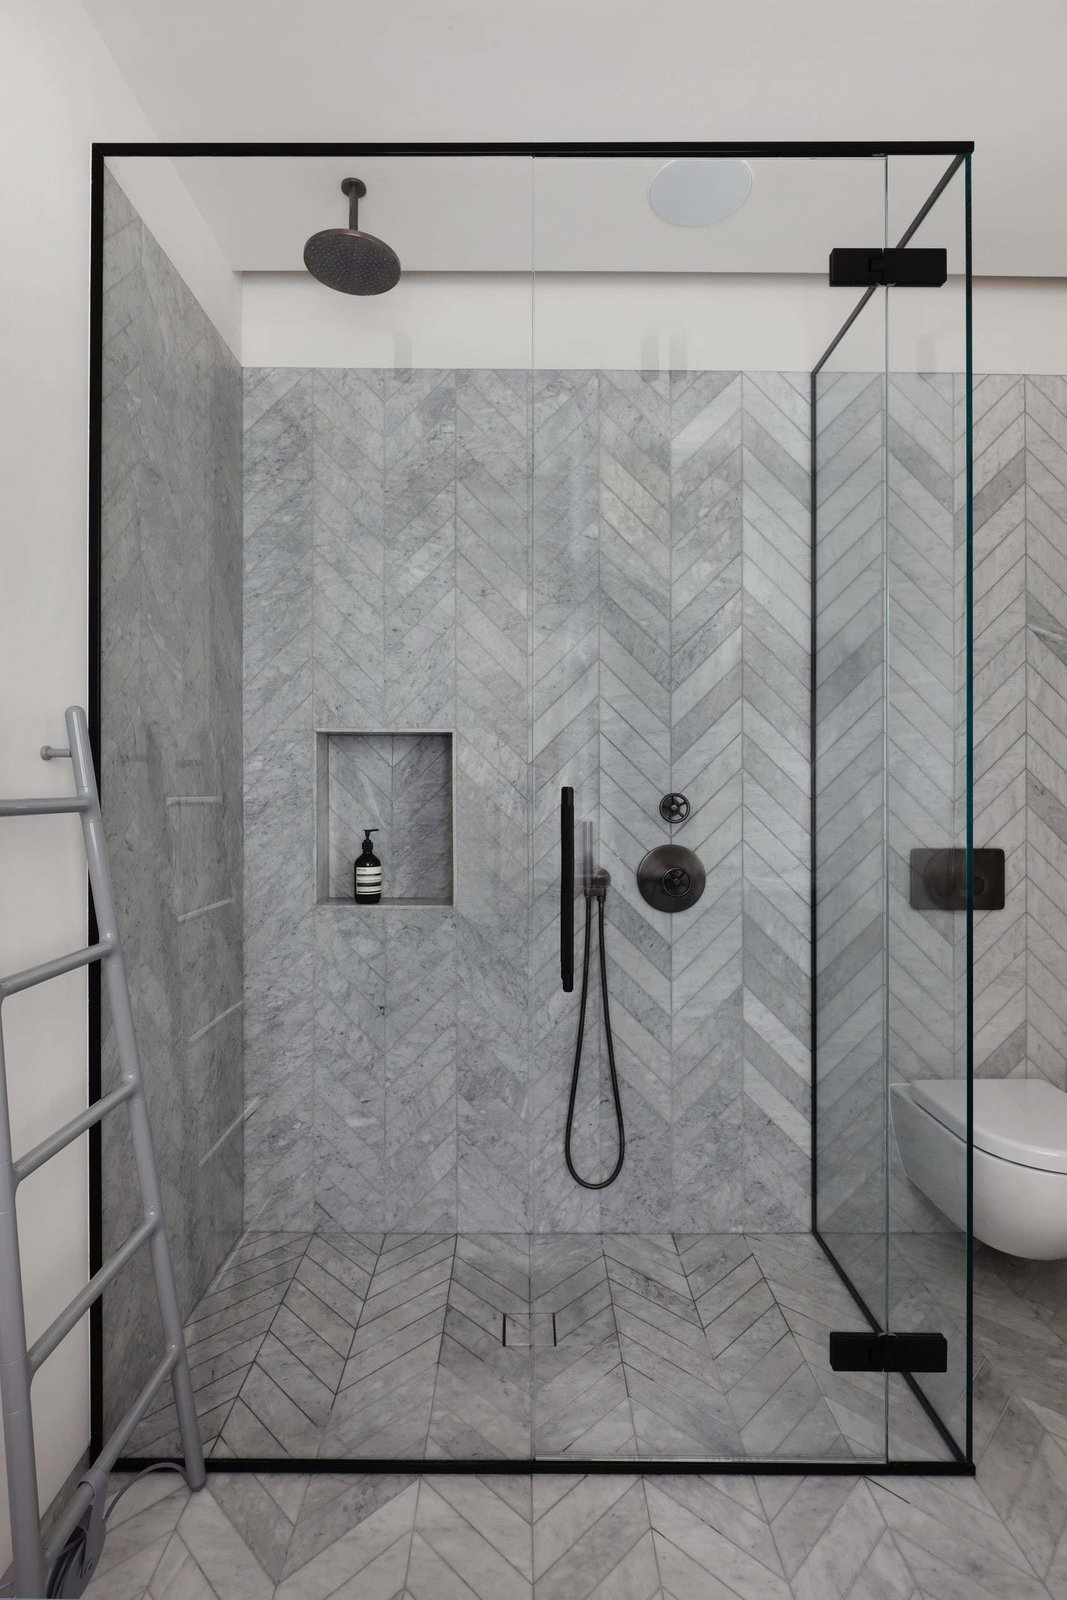 Bath, Stone, Enclosed, Corner, Marble, One Piece, and Stone Tile  Bath Marble Corner Photos from Maida Vale Apartment